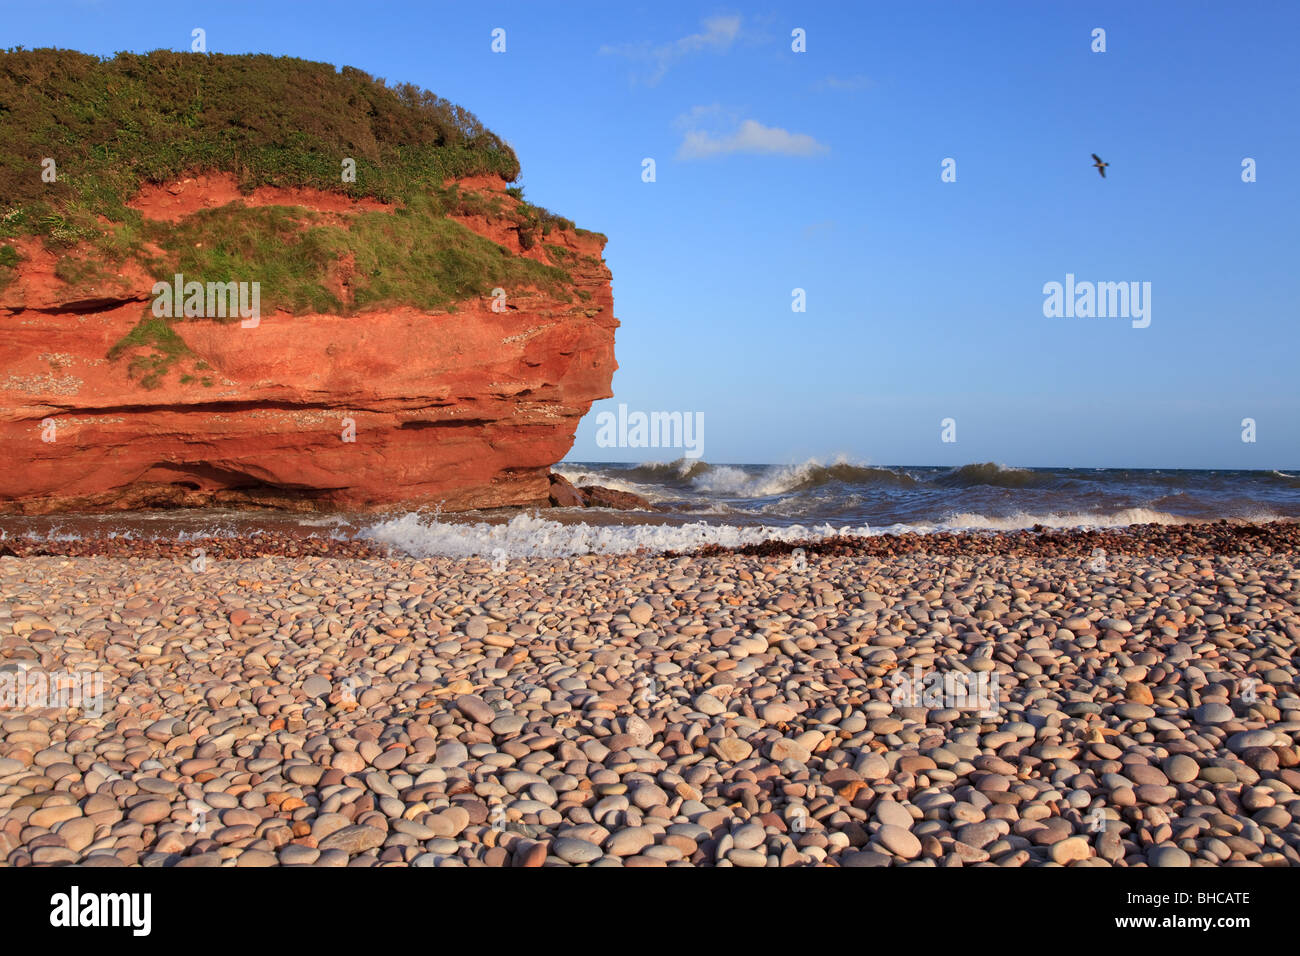 Otterhead, Budleigh Salterton, South Devon, England. Shot with high resolution camera. - Stock Image